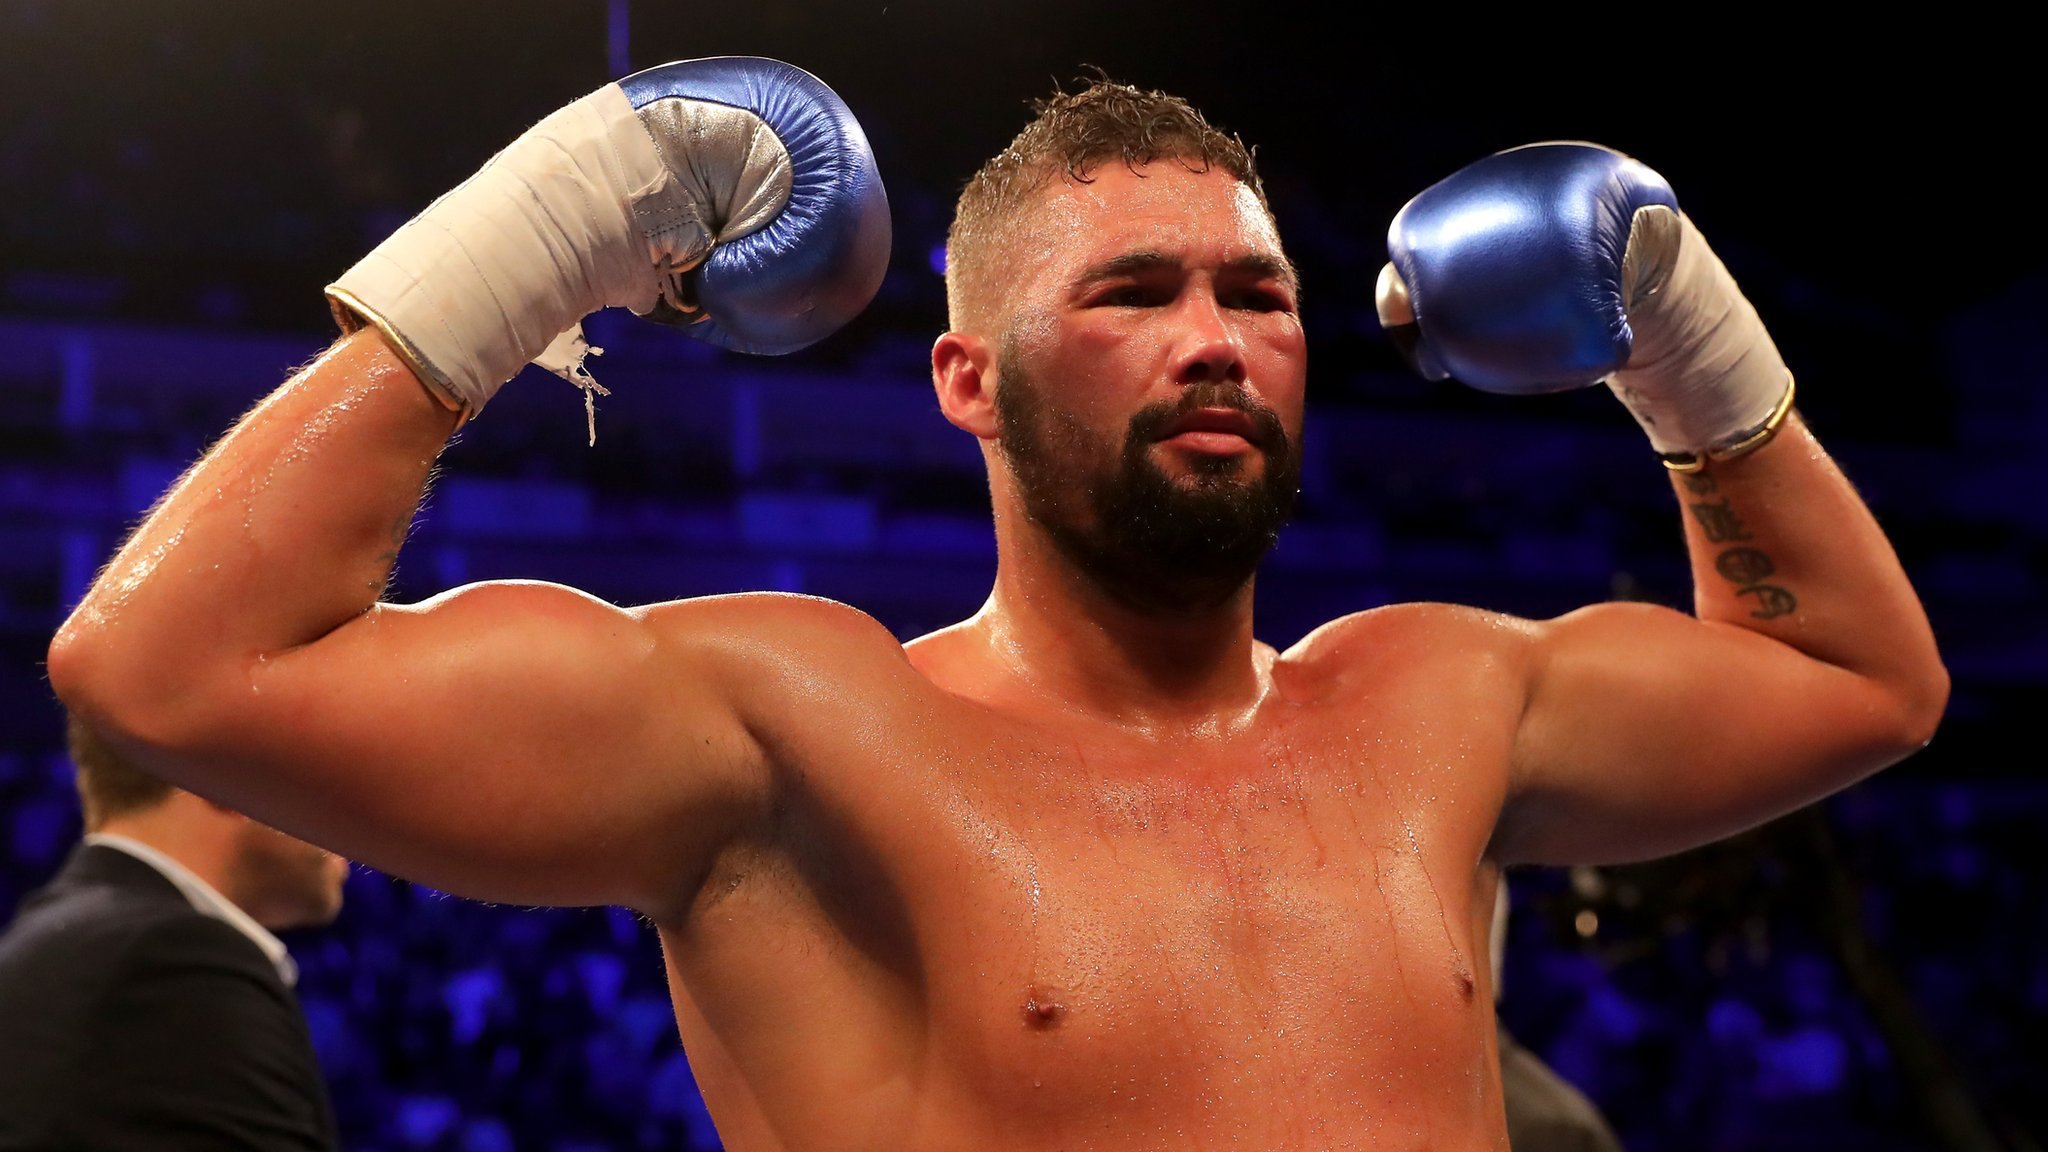 Tony Bellew v Oleksandr Usyk: I'd fight King Kong but I must stop, says Briton